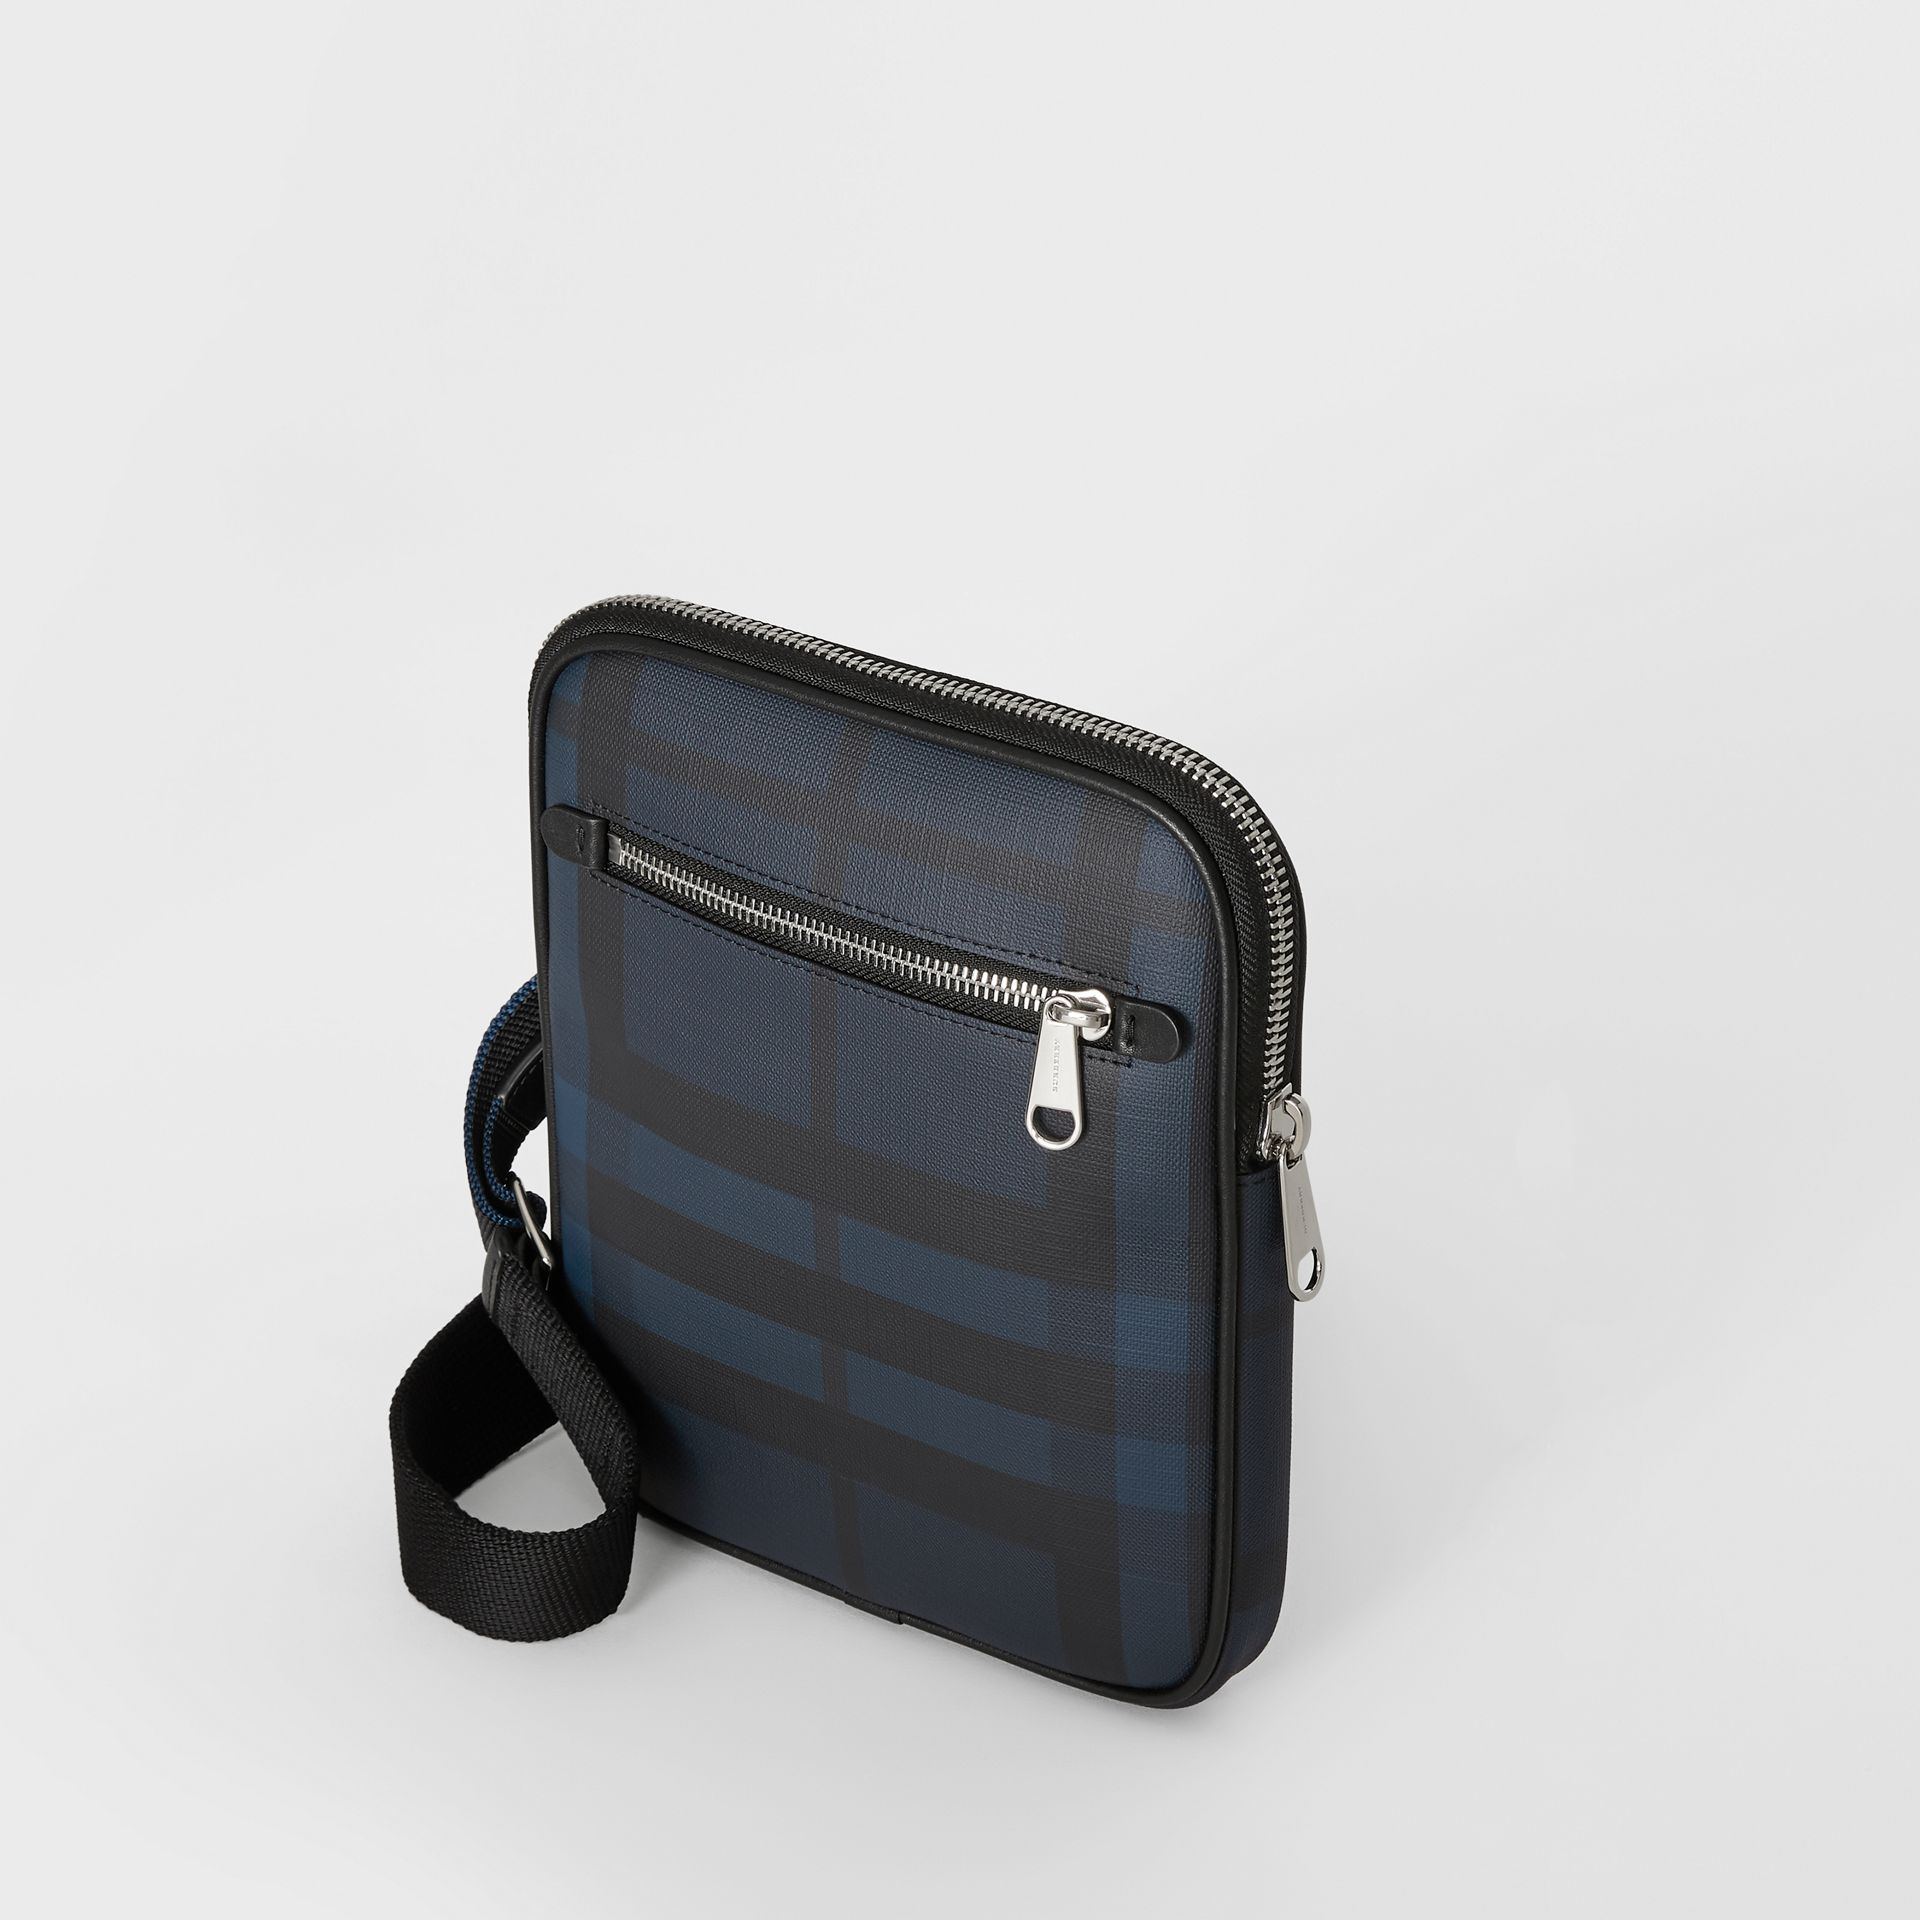 Slim London Check Crossbody Bag in Navy/black - Men | Burberry Hong Kong S.A.R - gallery image 4